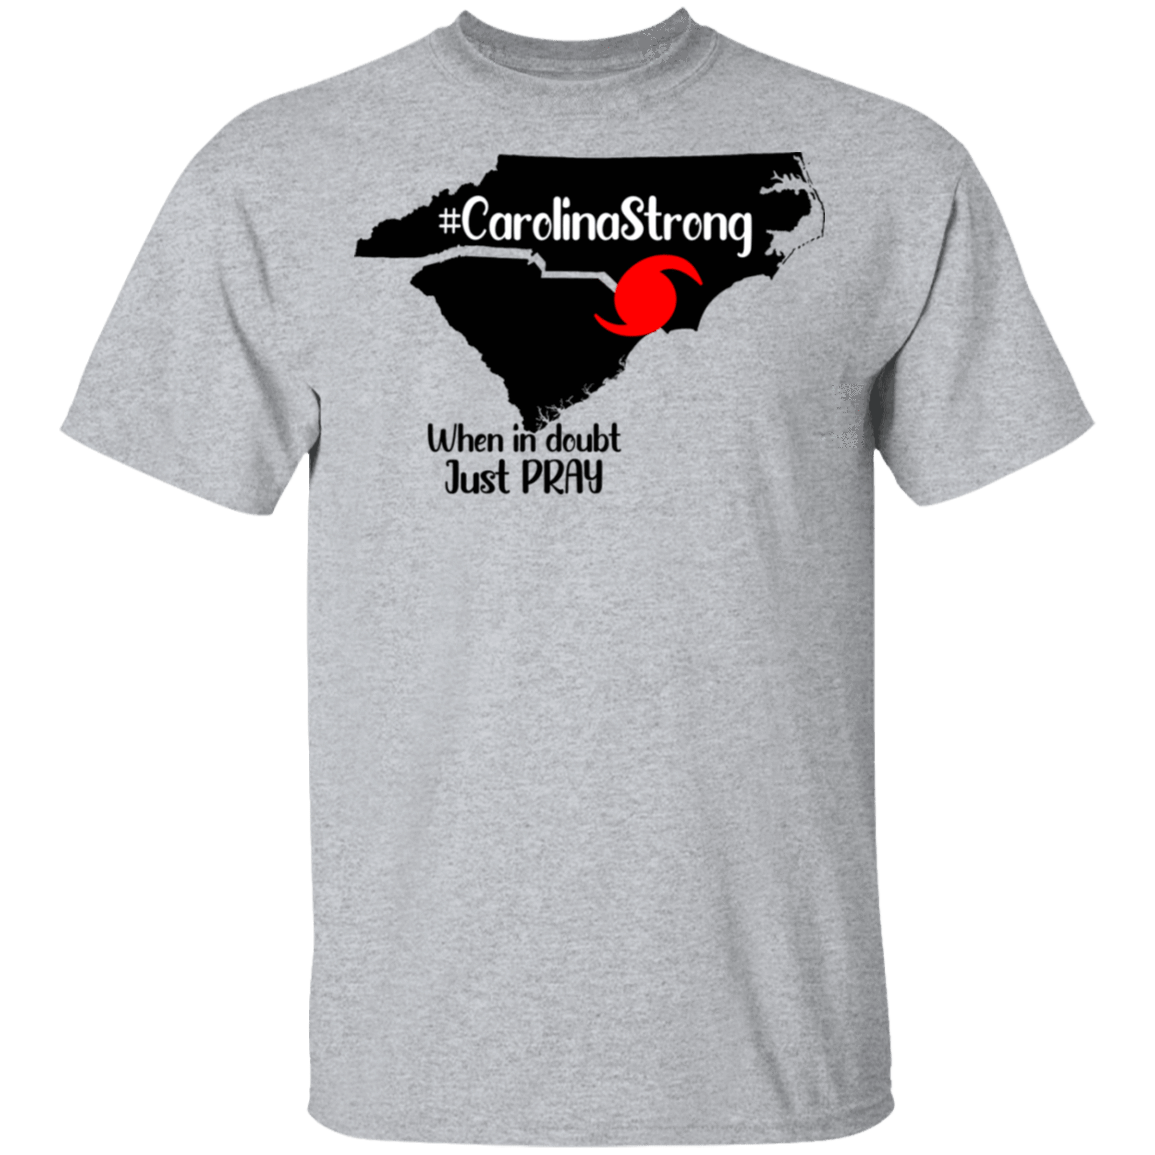 Carolina Strong When In Doubt Just Pray T-Shirts, Hoodies, Tank 22-115-79579570-254 - Tee Ript